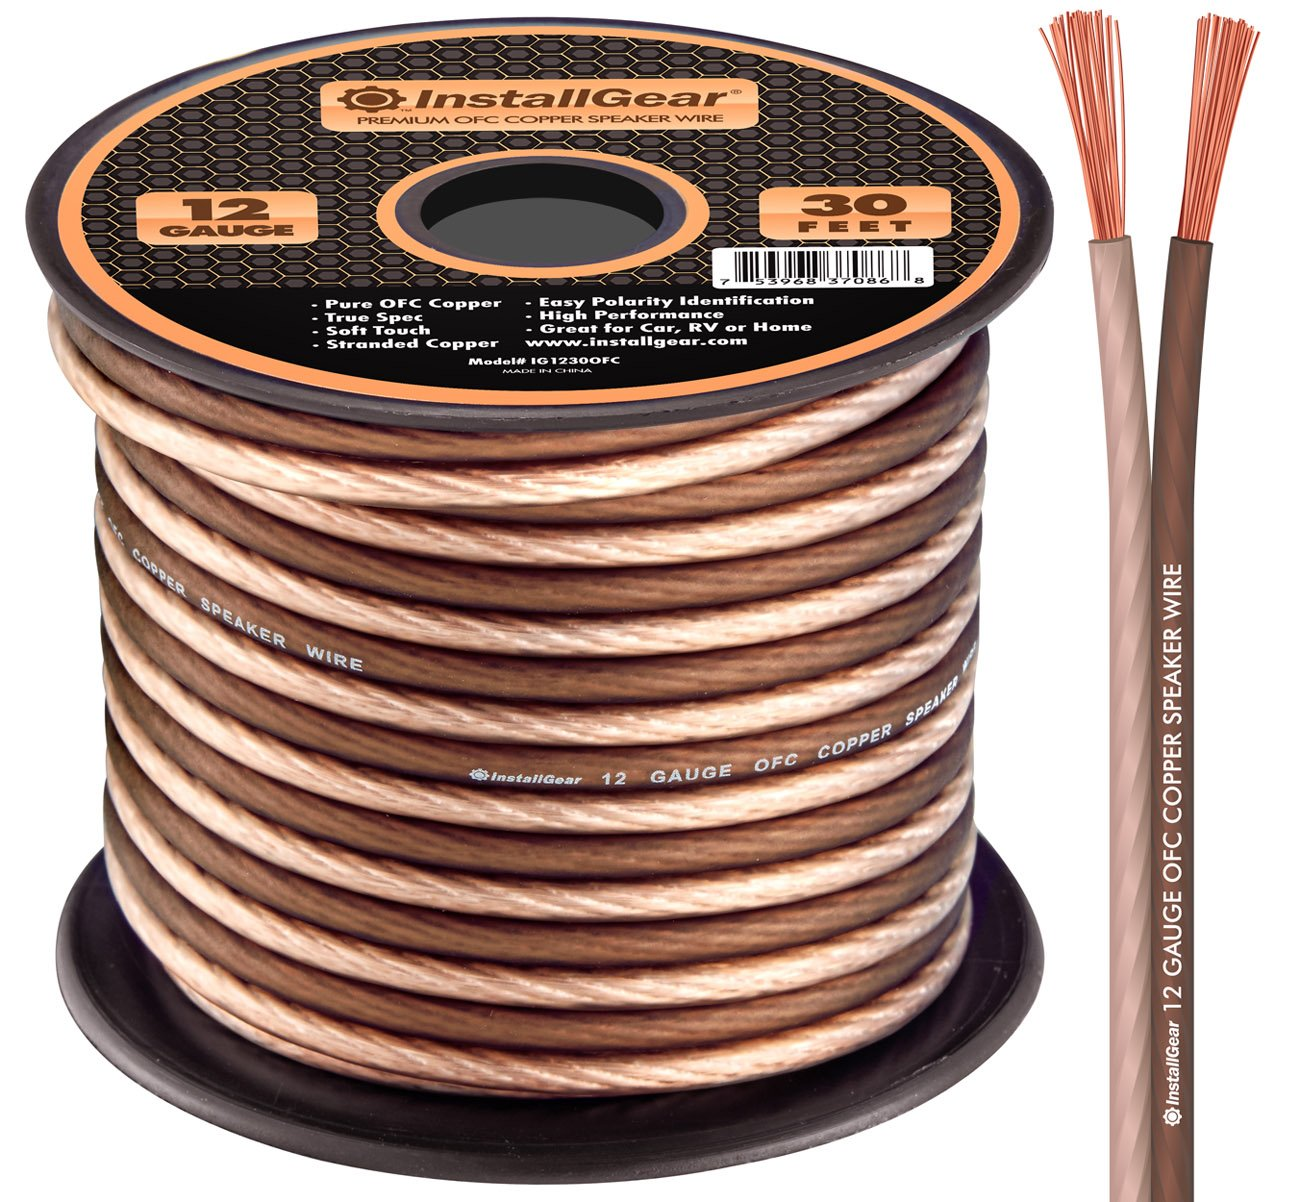 Installgear 12 Gauge Speaker Wire 999 Oxygen Free China Electric Electrical Copper Wires True Spec And Soft Touch Cable 30 Feet Cell Phones Accessories